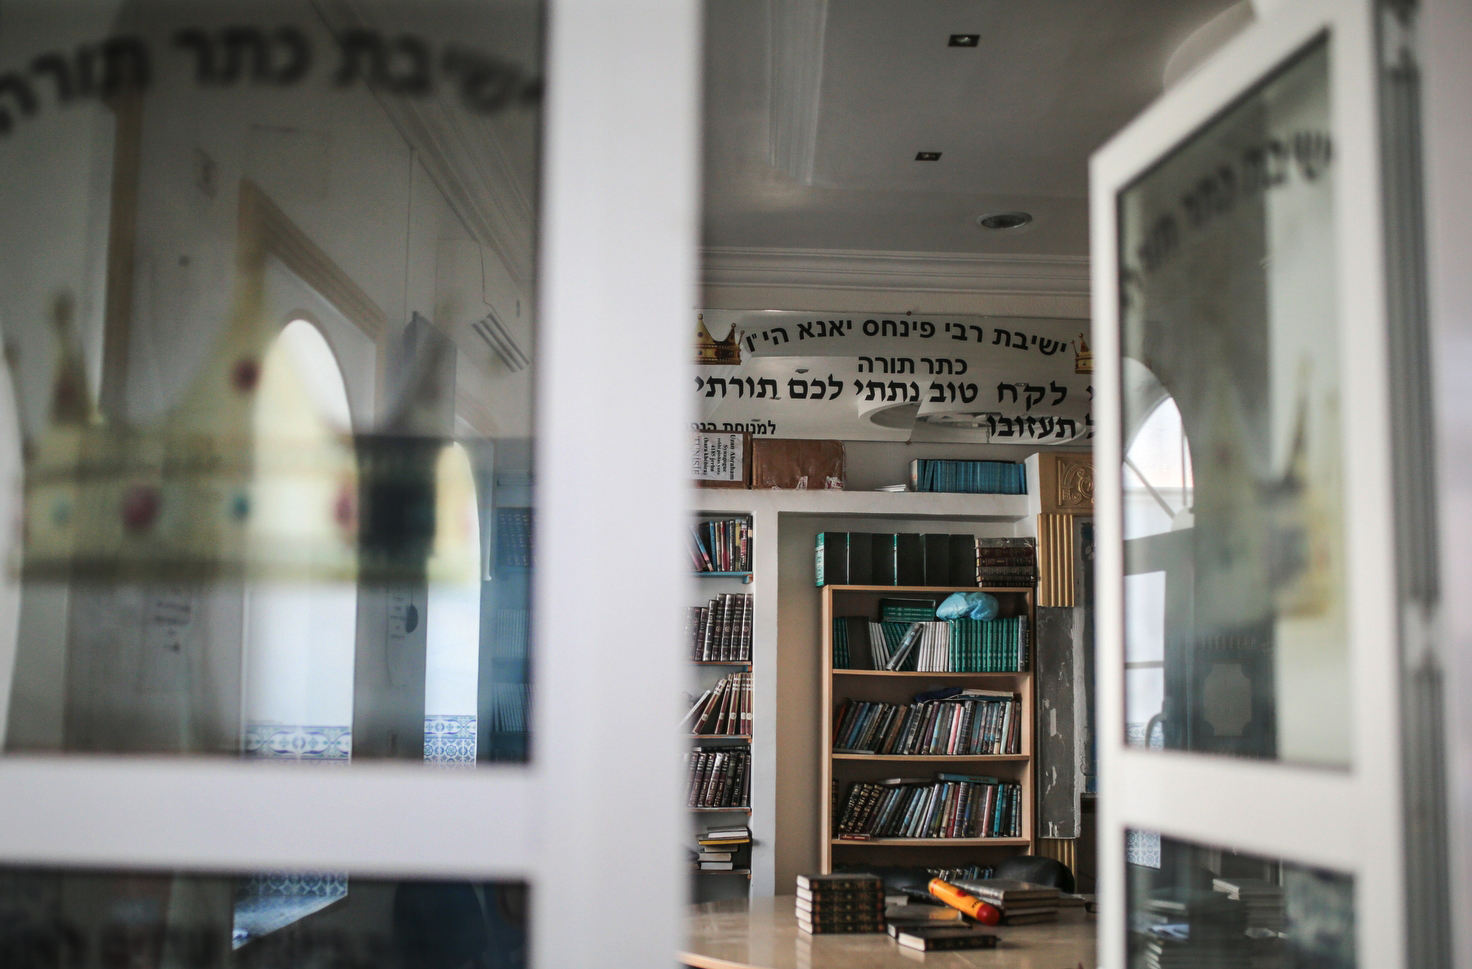 Jewish holy books are seen at a library at Hara Kbira, the main Jewish neighborhood on the Island of Djerba, southern Tunisia, Oct. 30, 2015.